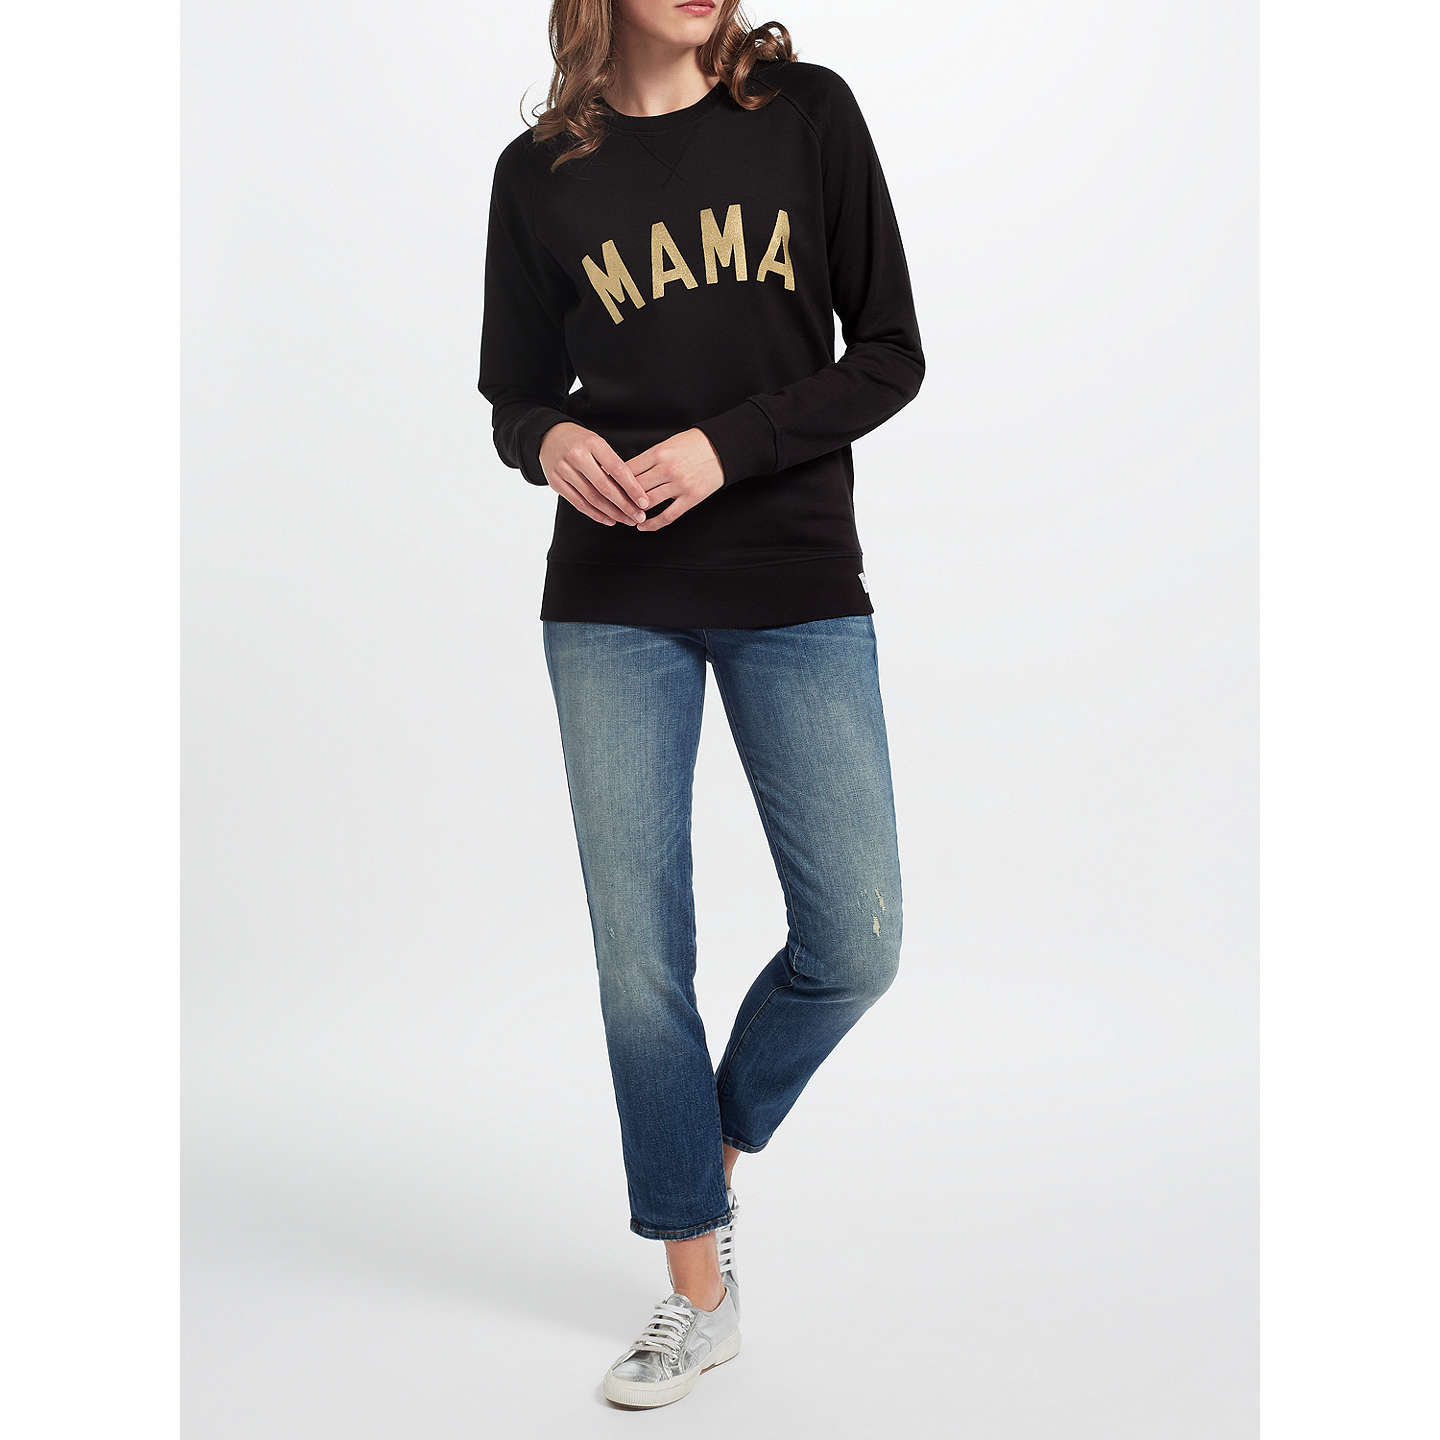 BuySelfish Mother Mama Crew Neck Sweatshirt, Black/Gold, S Online at johnlewis.com